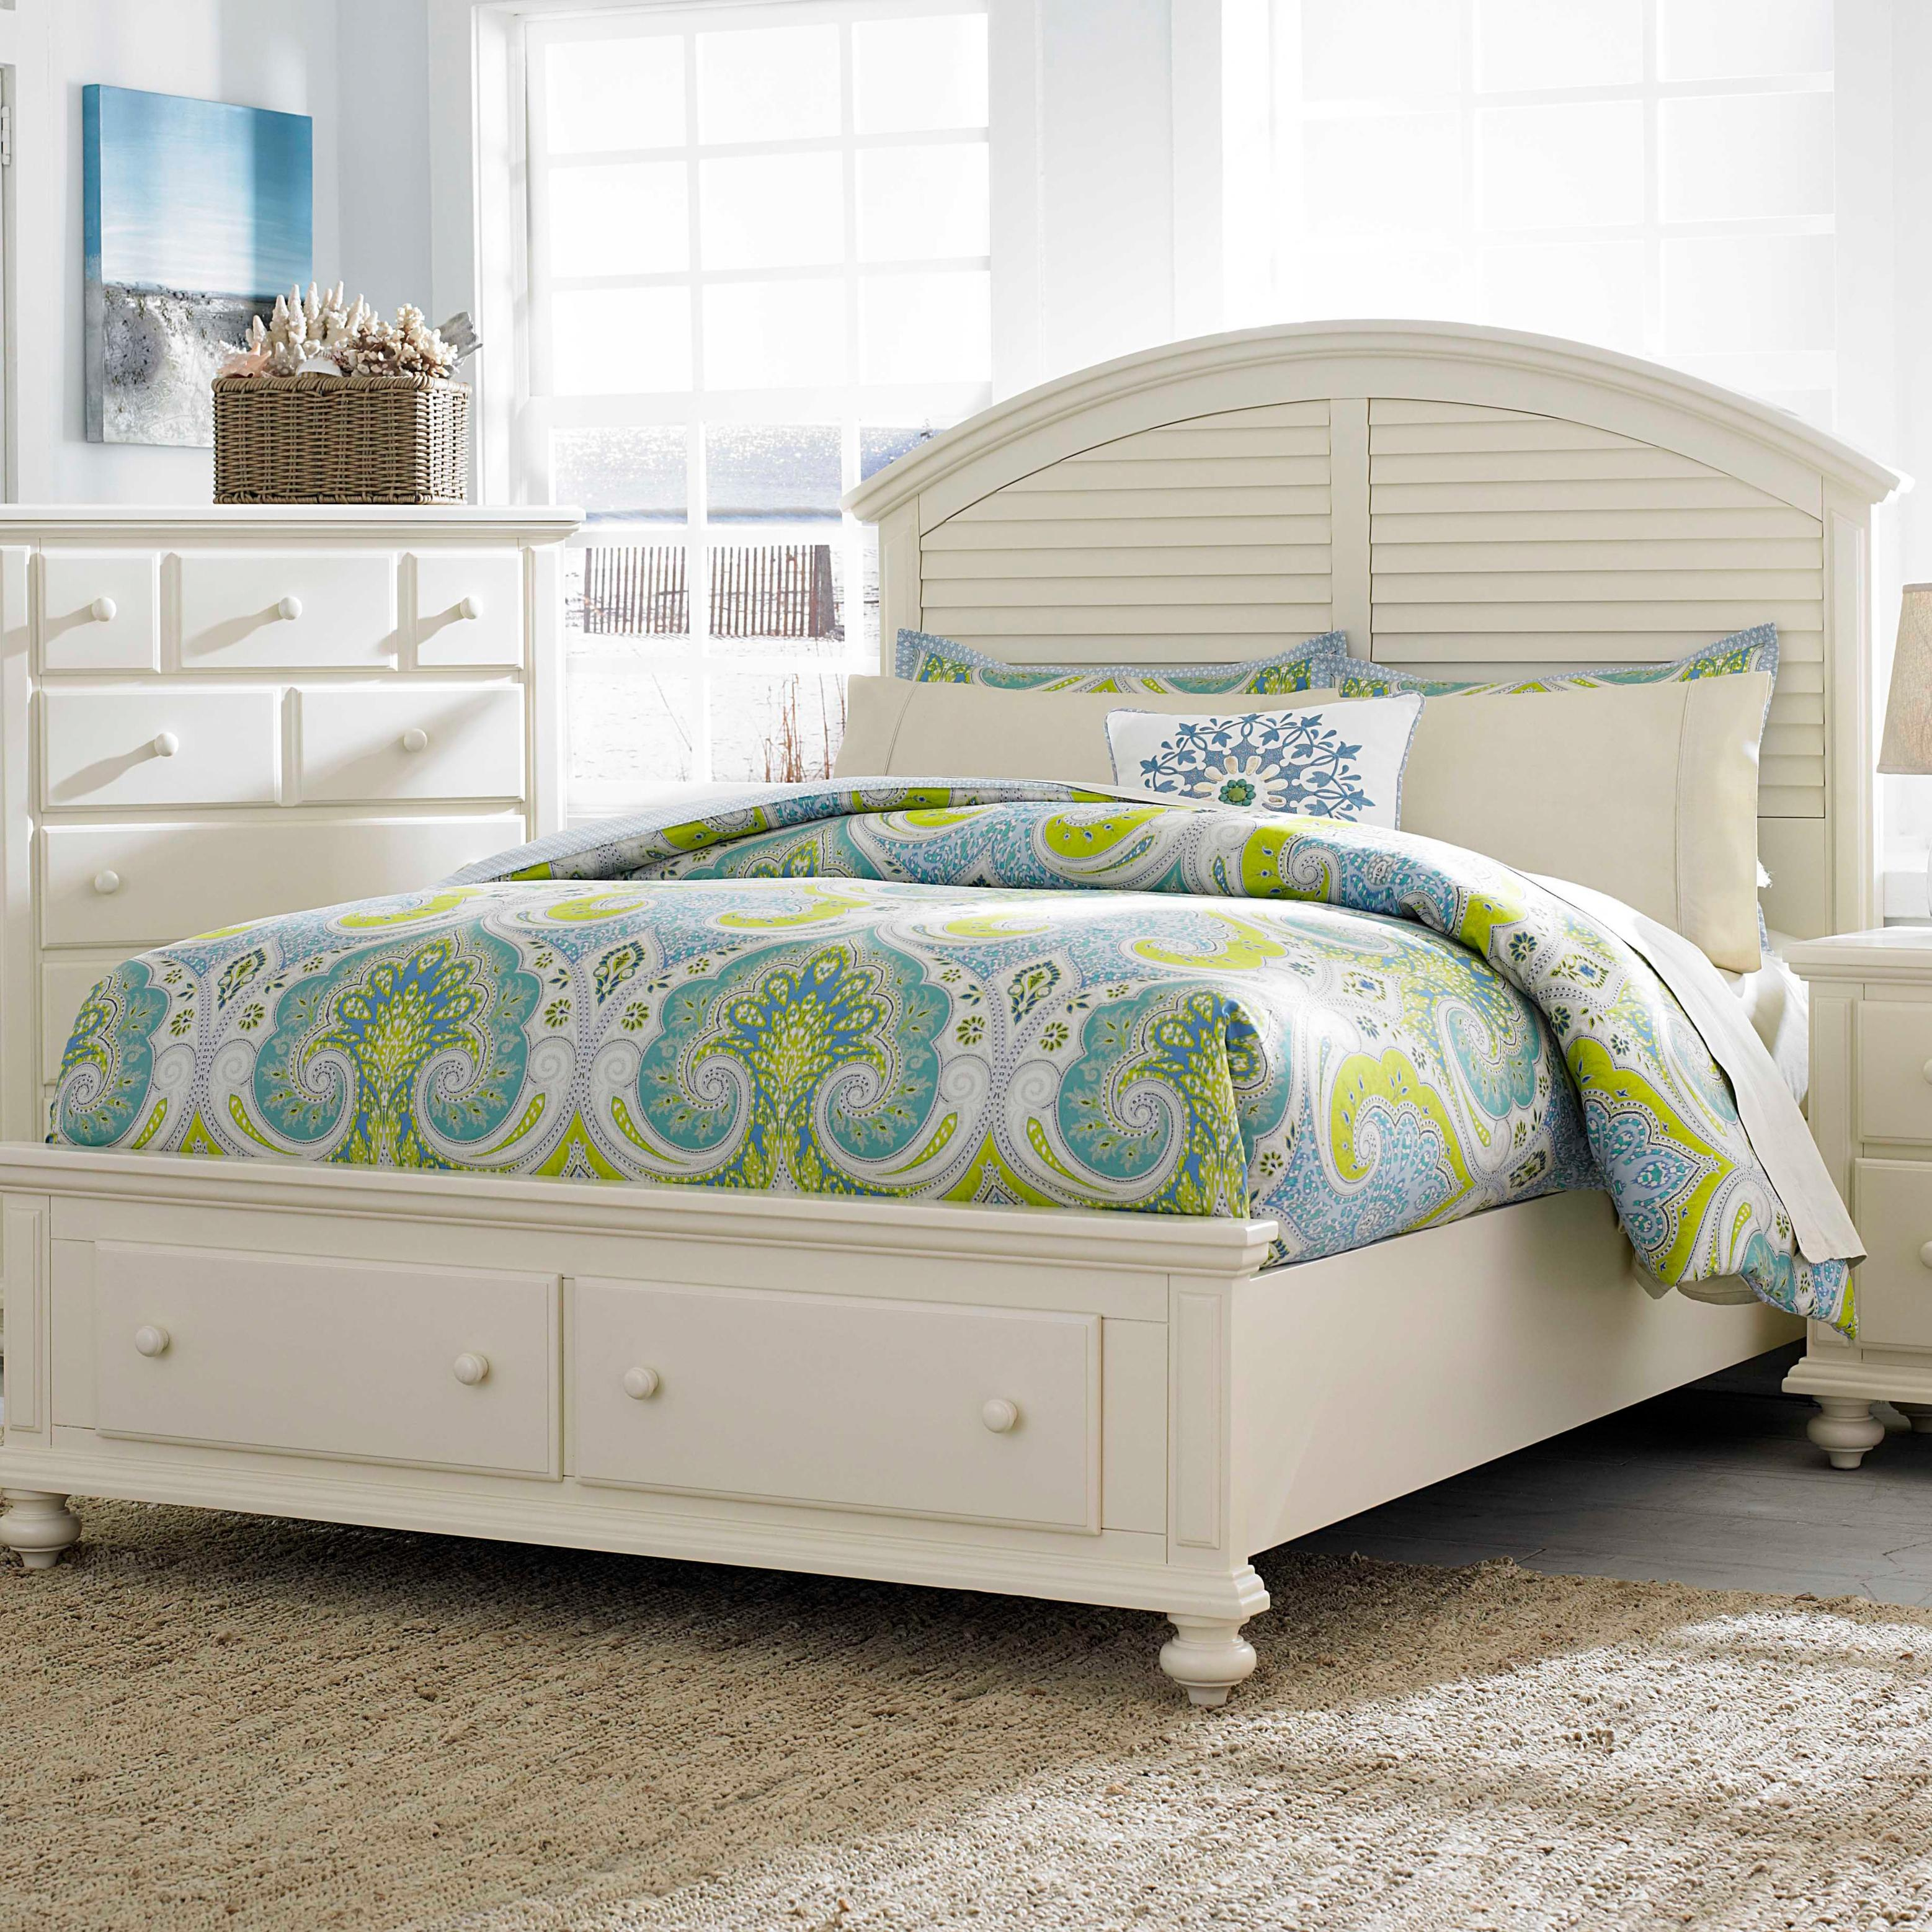 Broyhill Furniture Seabrooke King Panel Bed with Storage Footboard  - Item Number: 4471-254+257+460